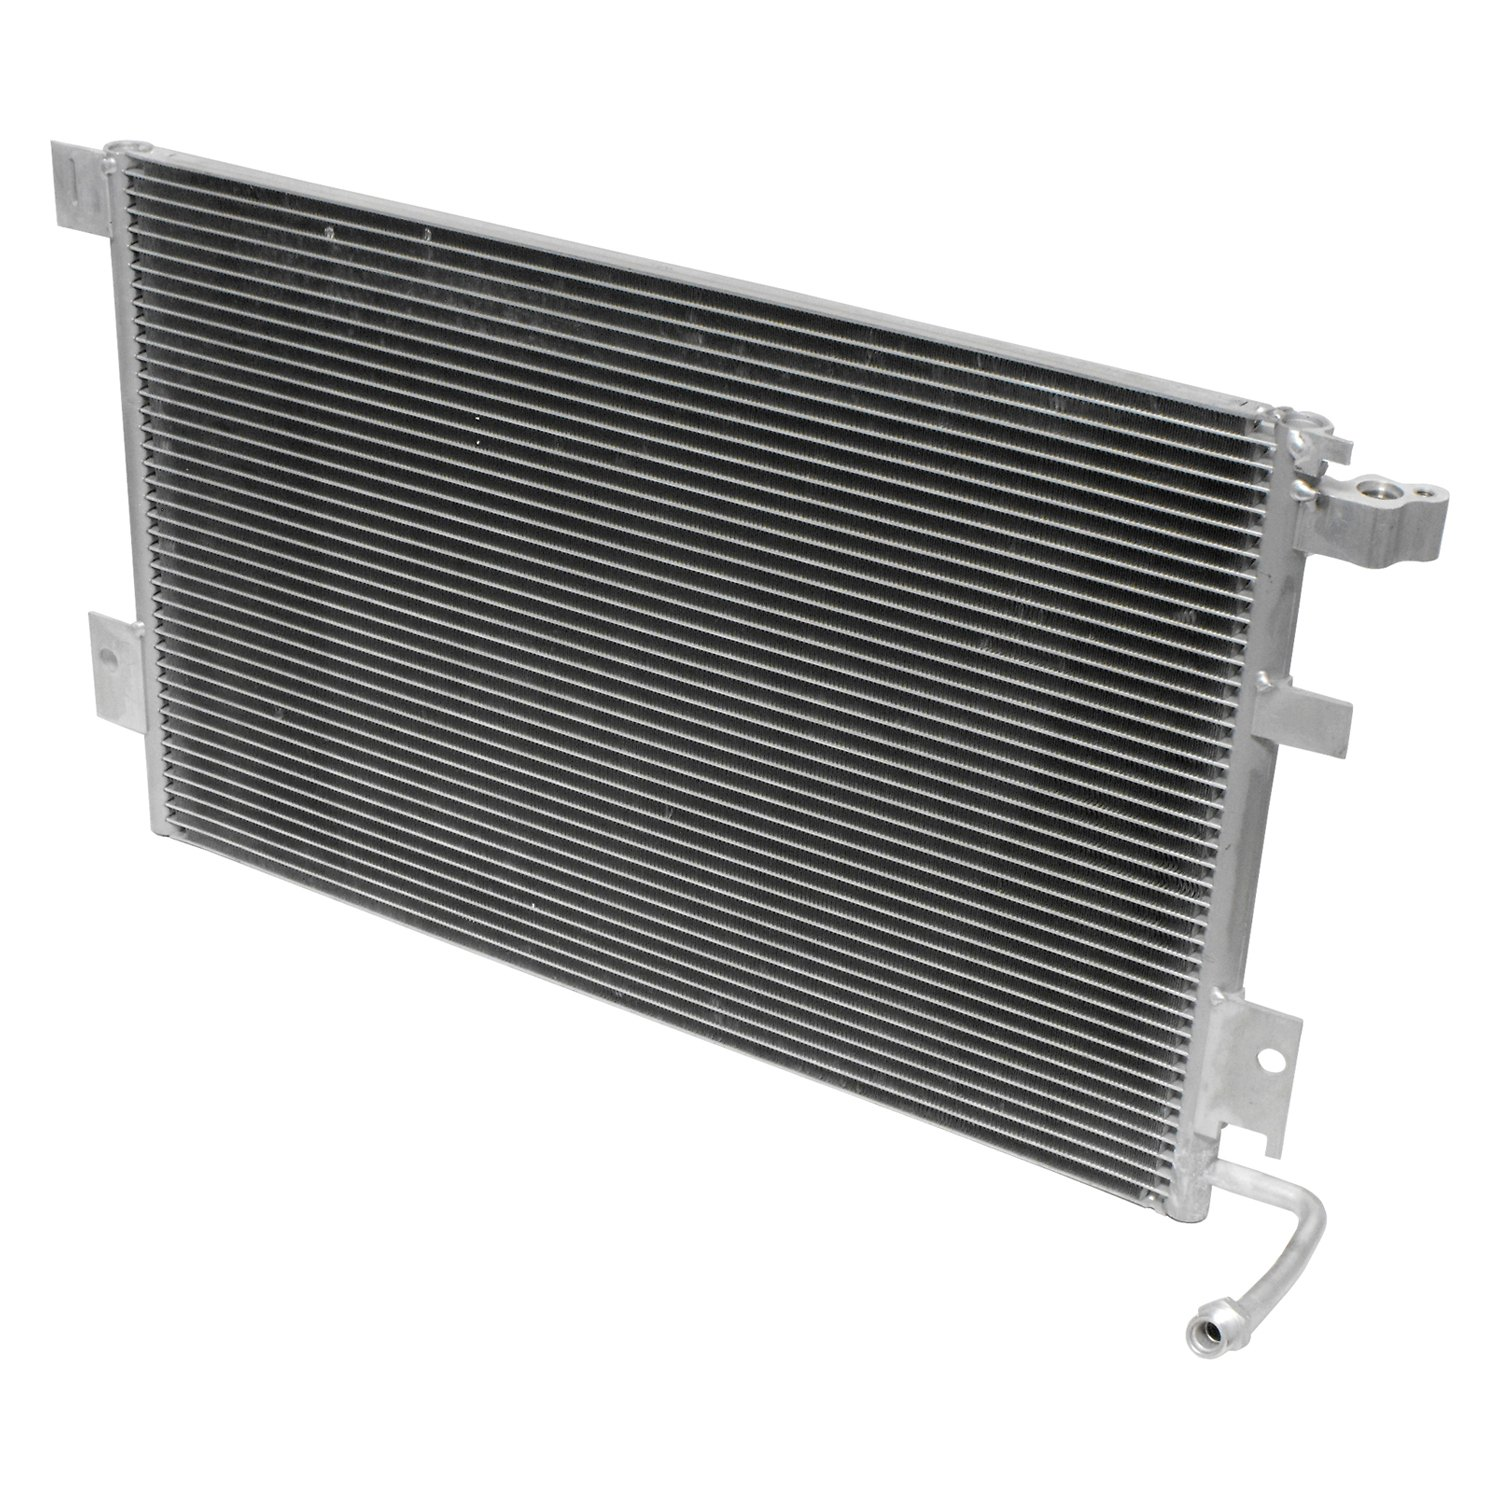 #565450 UAC® Chevy Corvette 2004 A/C Condenser Most Effective 12195 Heating And Air Conditioning Parts pictures with 1500x1500 px on helpvideos.info - Air Conditioners, Air Coolers and more